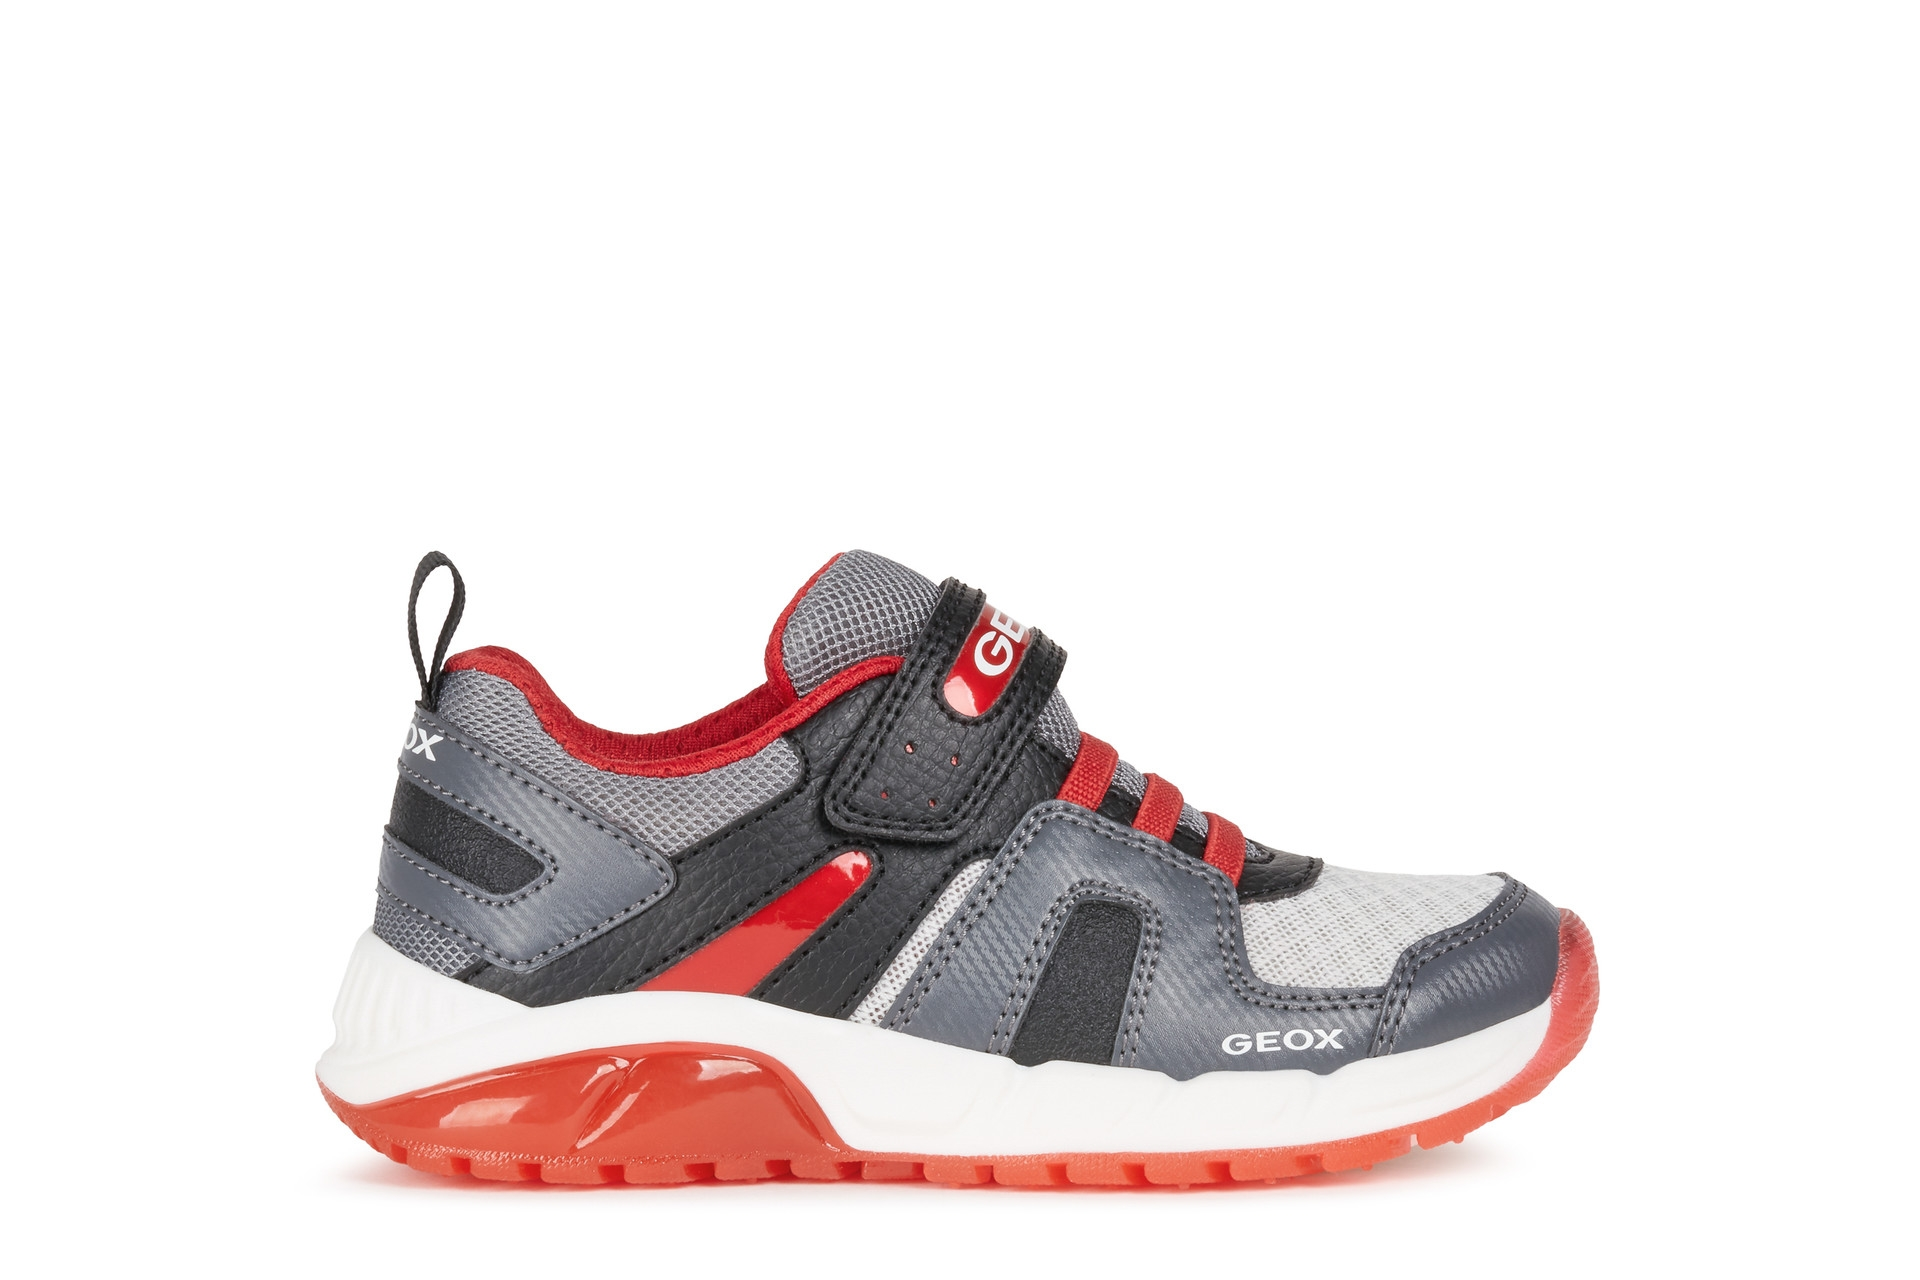 Geox Boys Light-Up Trainer   J SPAZIALE   Grey Red